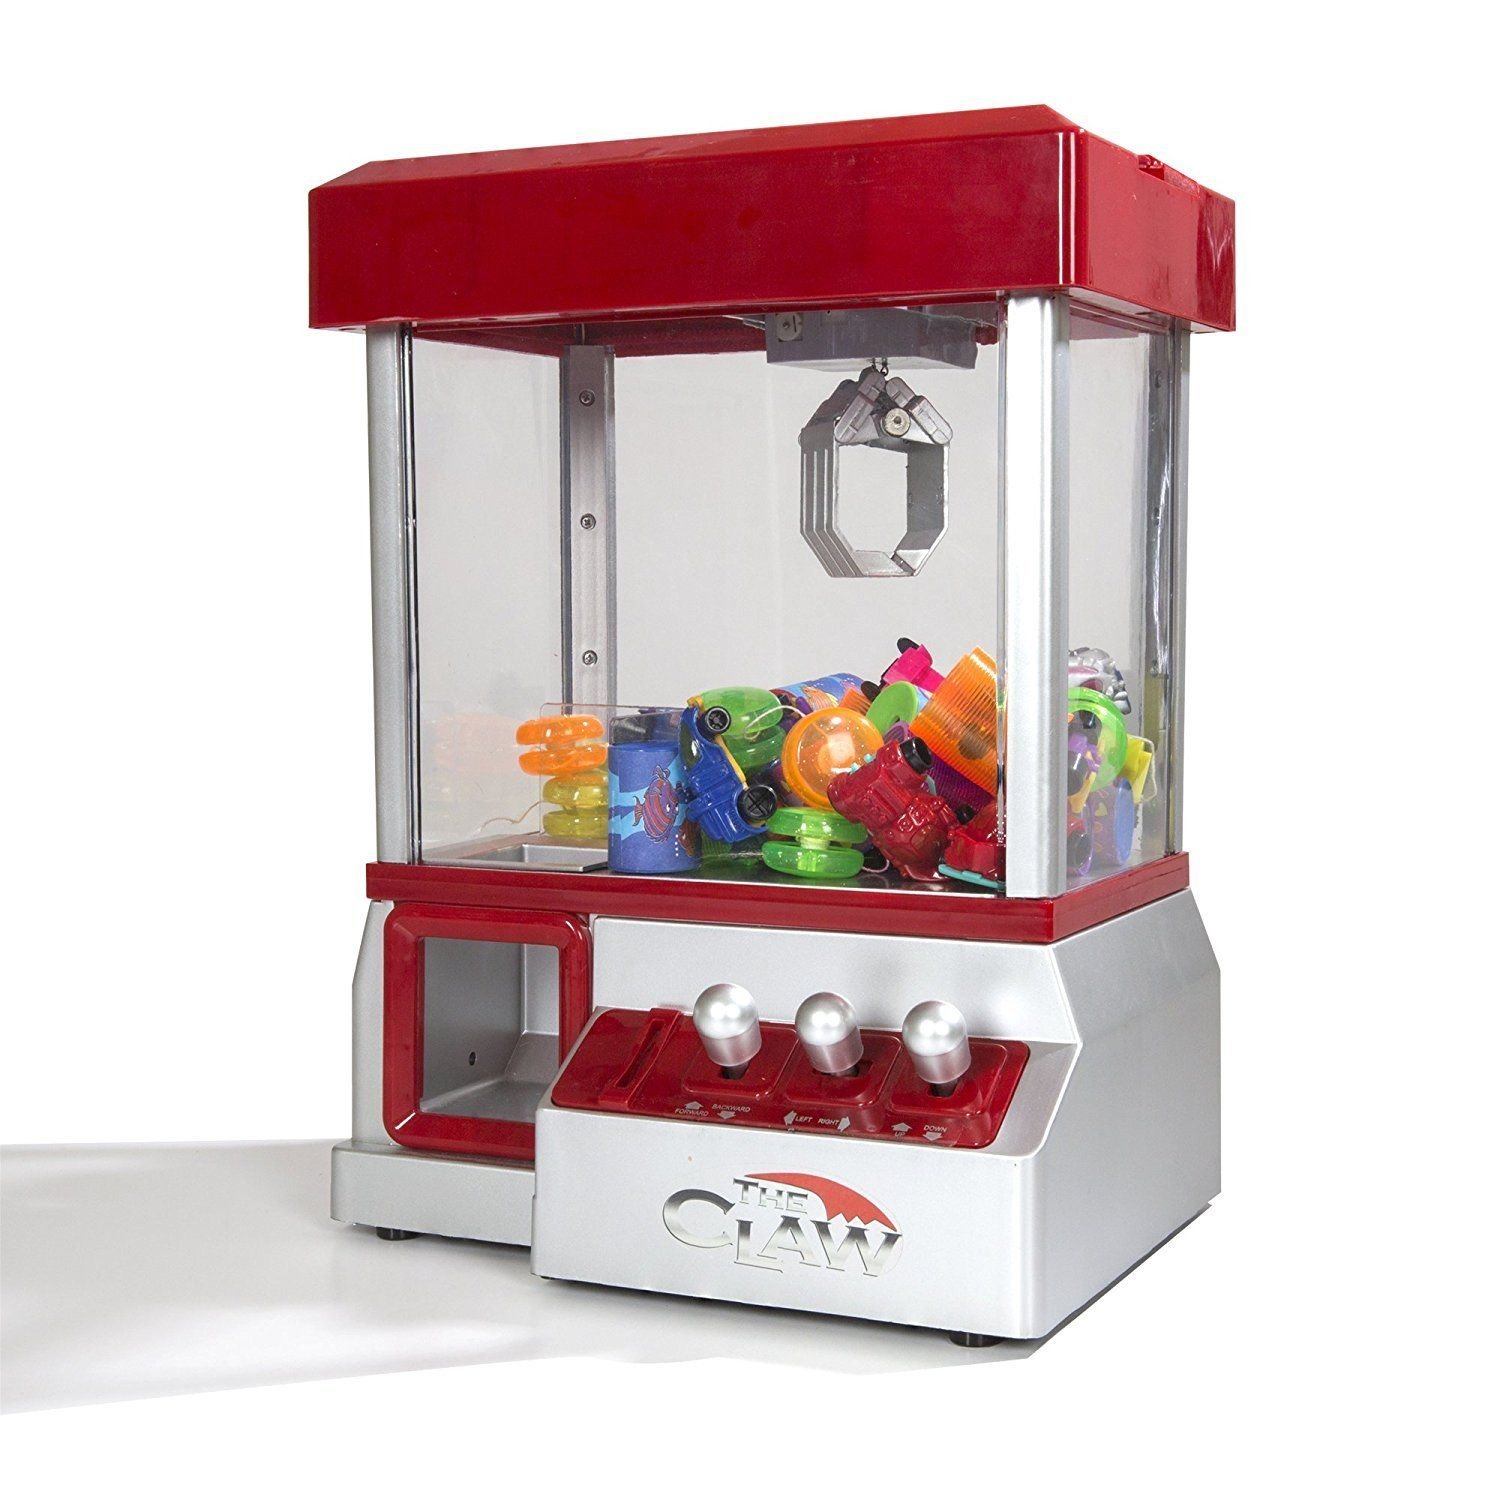 Alek...Shop Carnival Claw Game Electronic Home Arcade Toy Grabber Crane Machine Features And Exciting by Alek...Shop (Image #2)